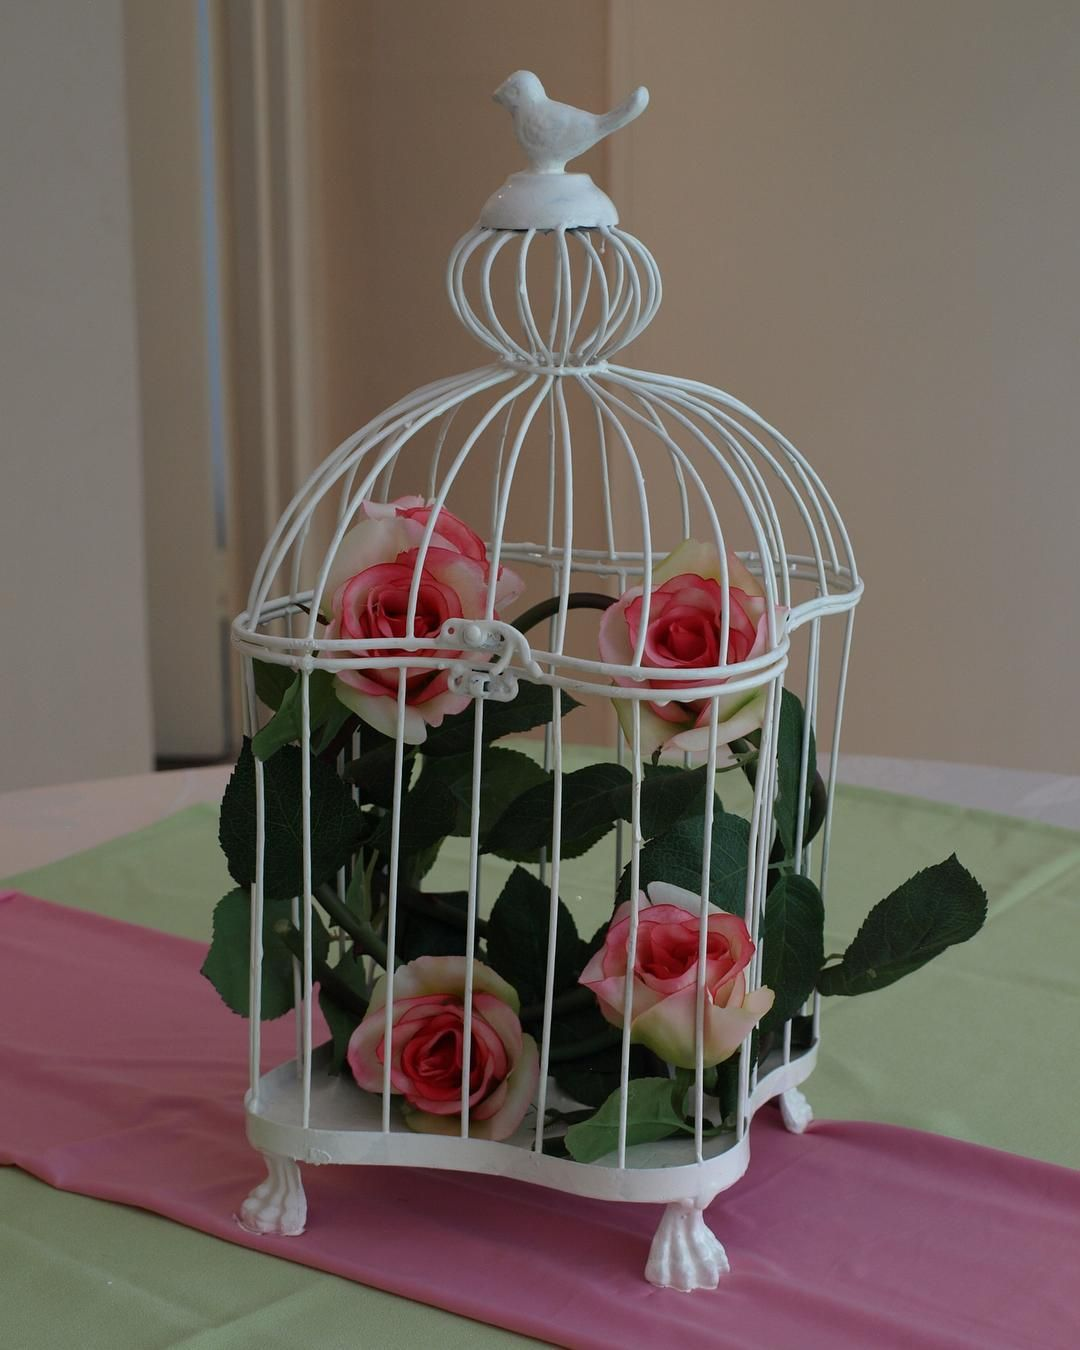 Wedding decor images zimbabwe  myfavouritethings wedding decor zimbabwe birdcage rose pink